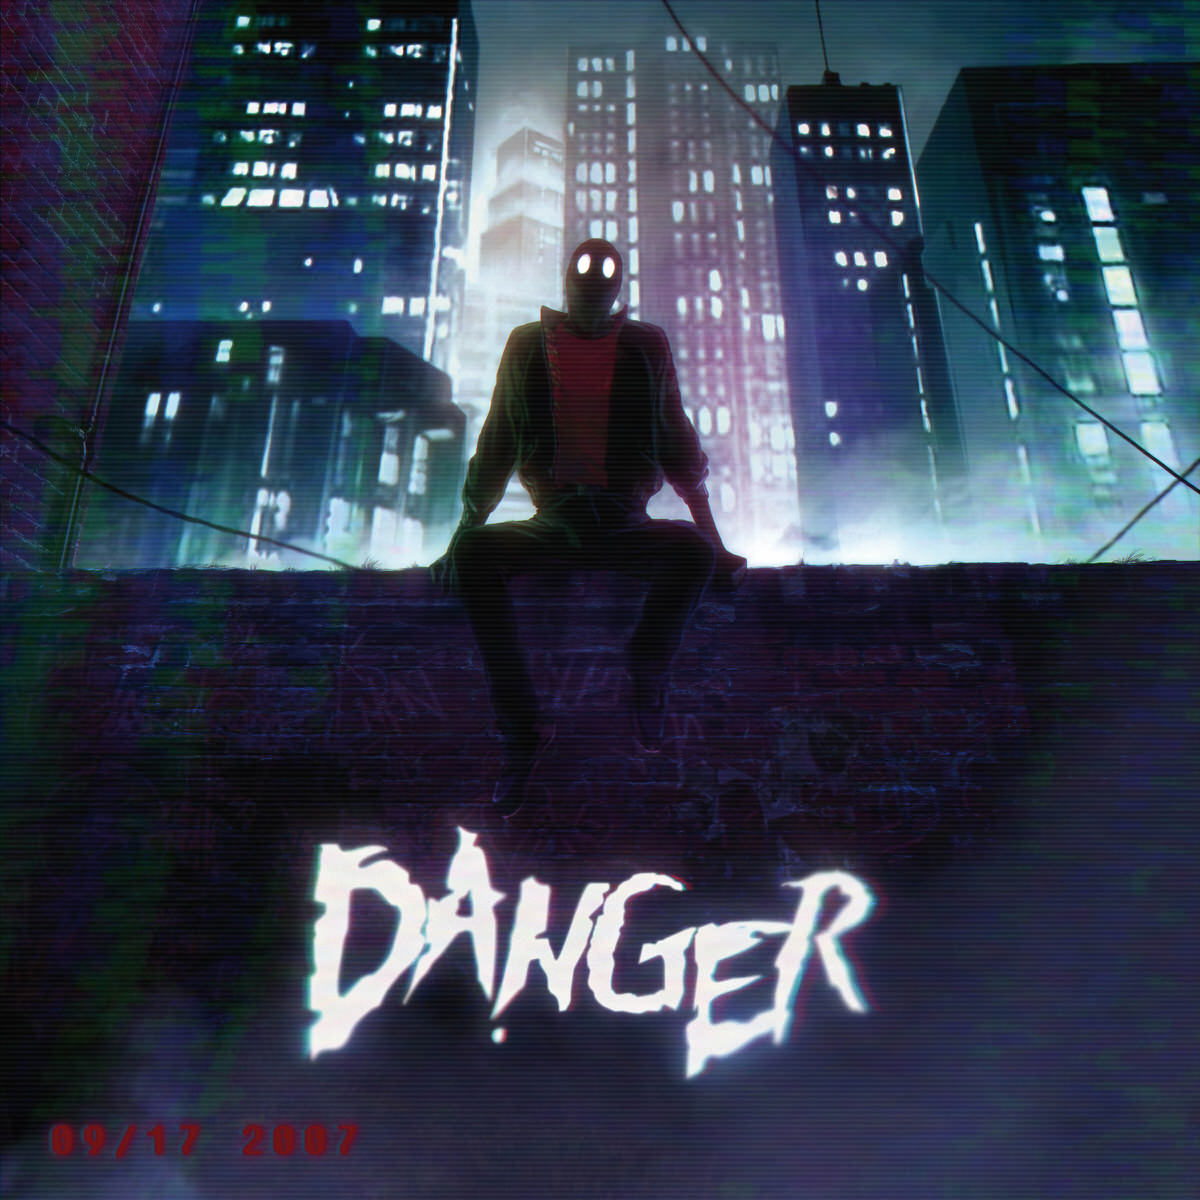 Danger - 09/17 2007 EP - Cover - M